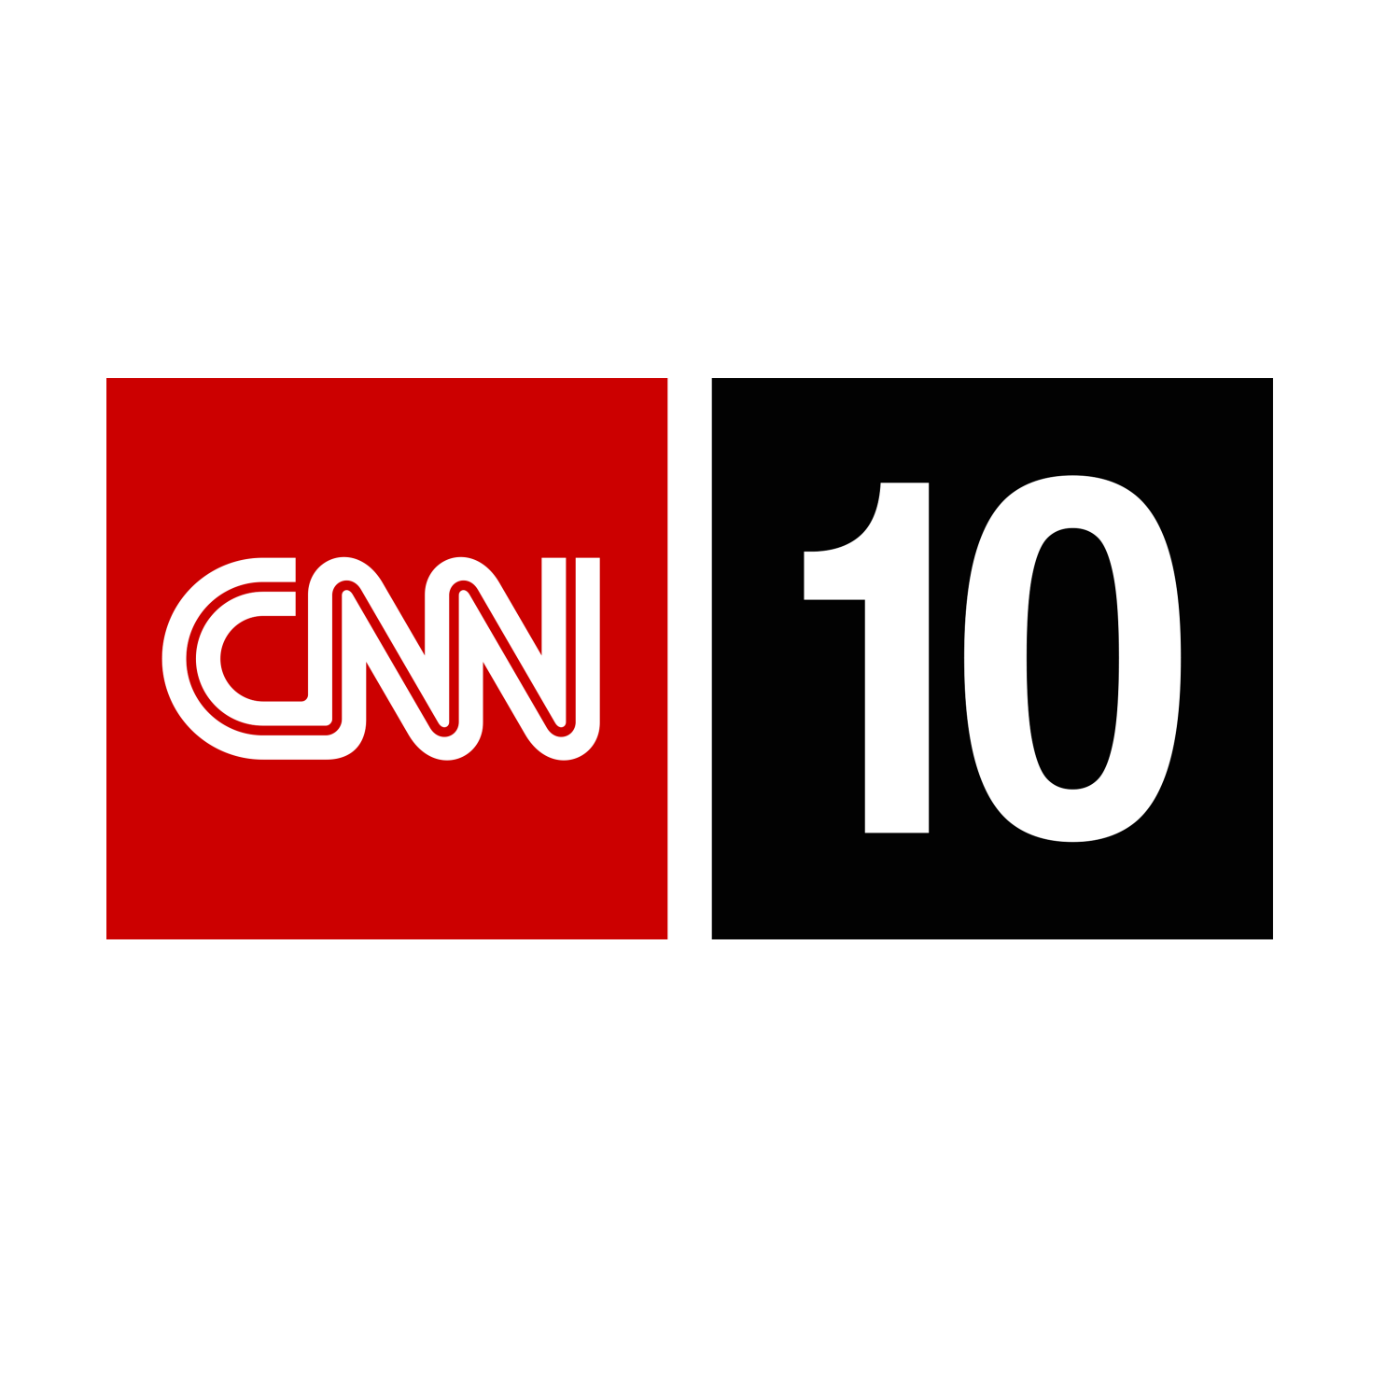 CNN Student News - September 25, 2012